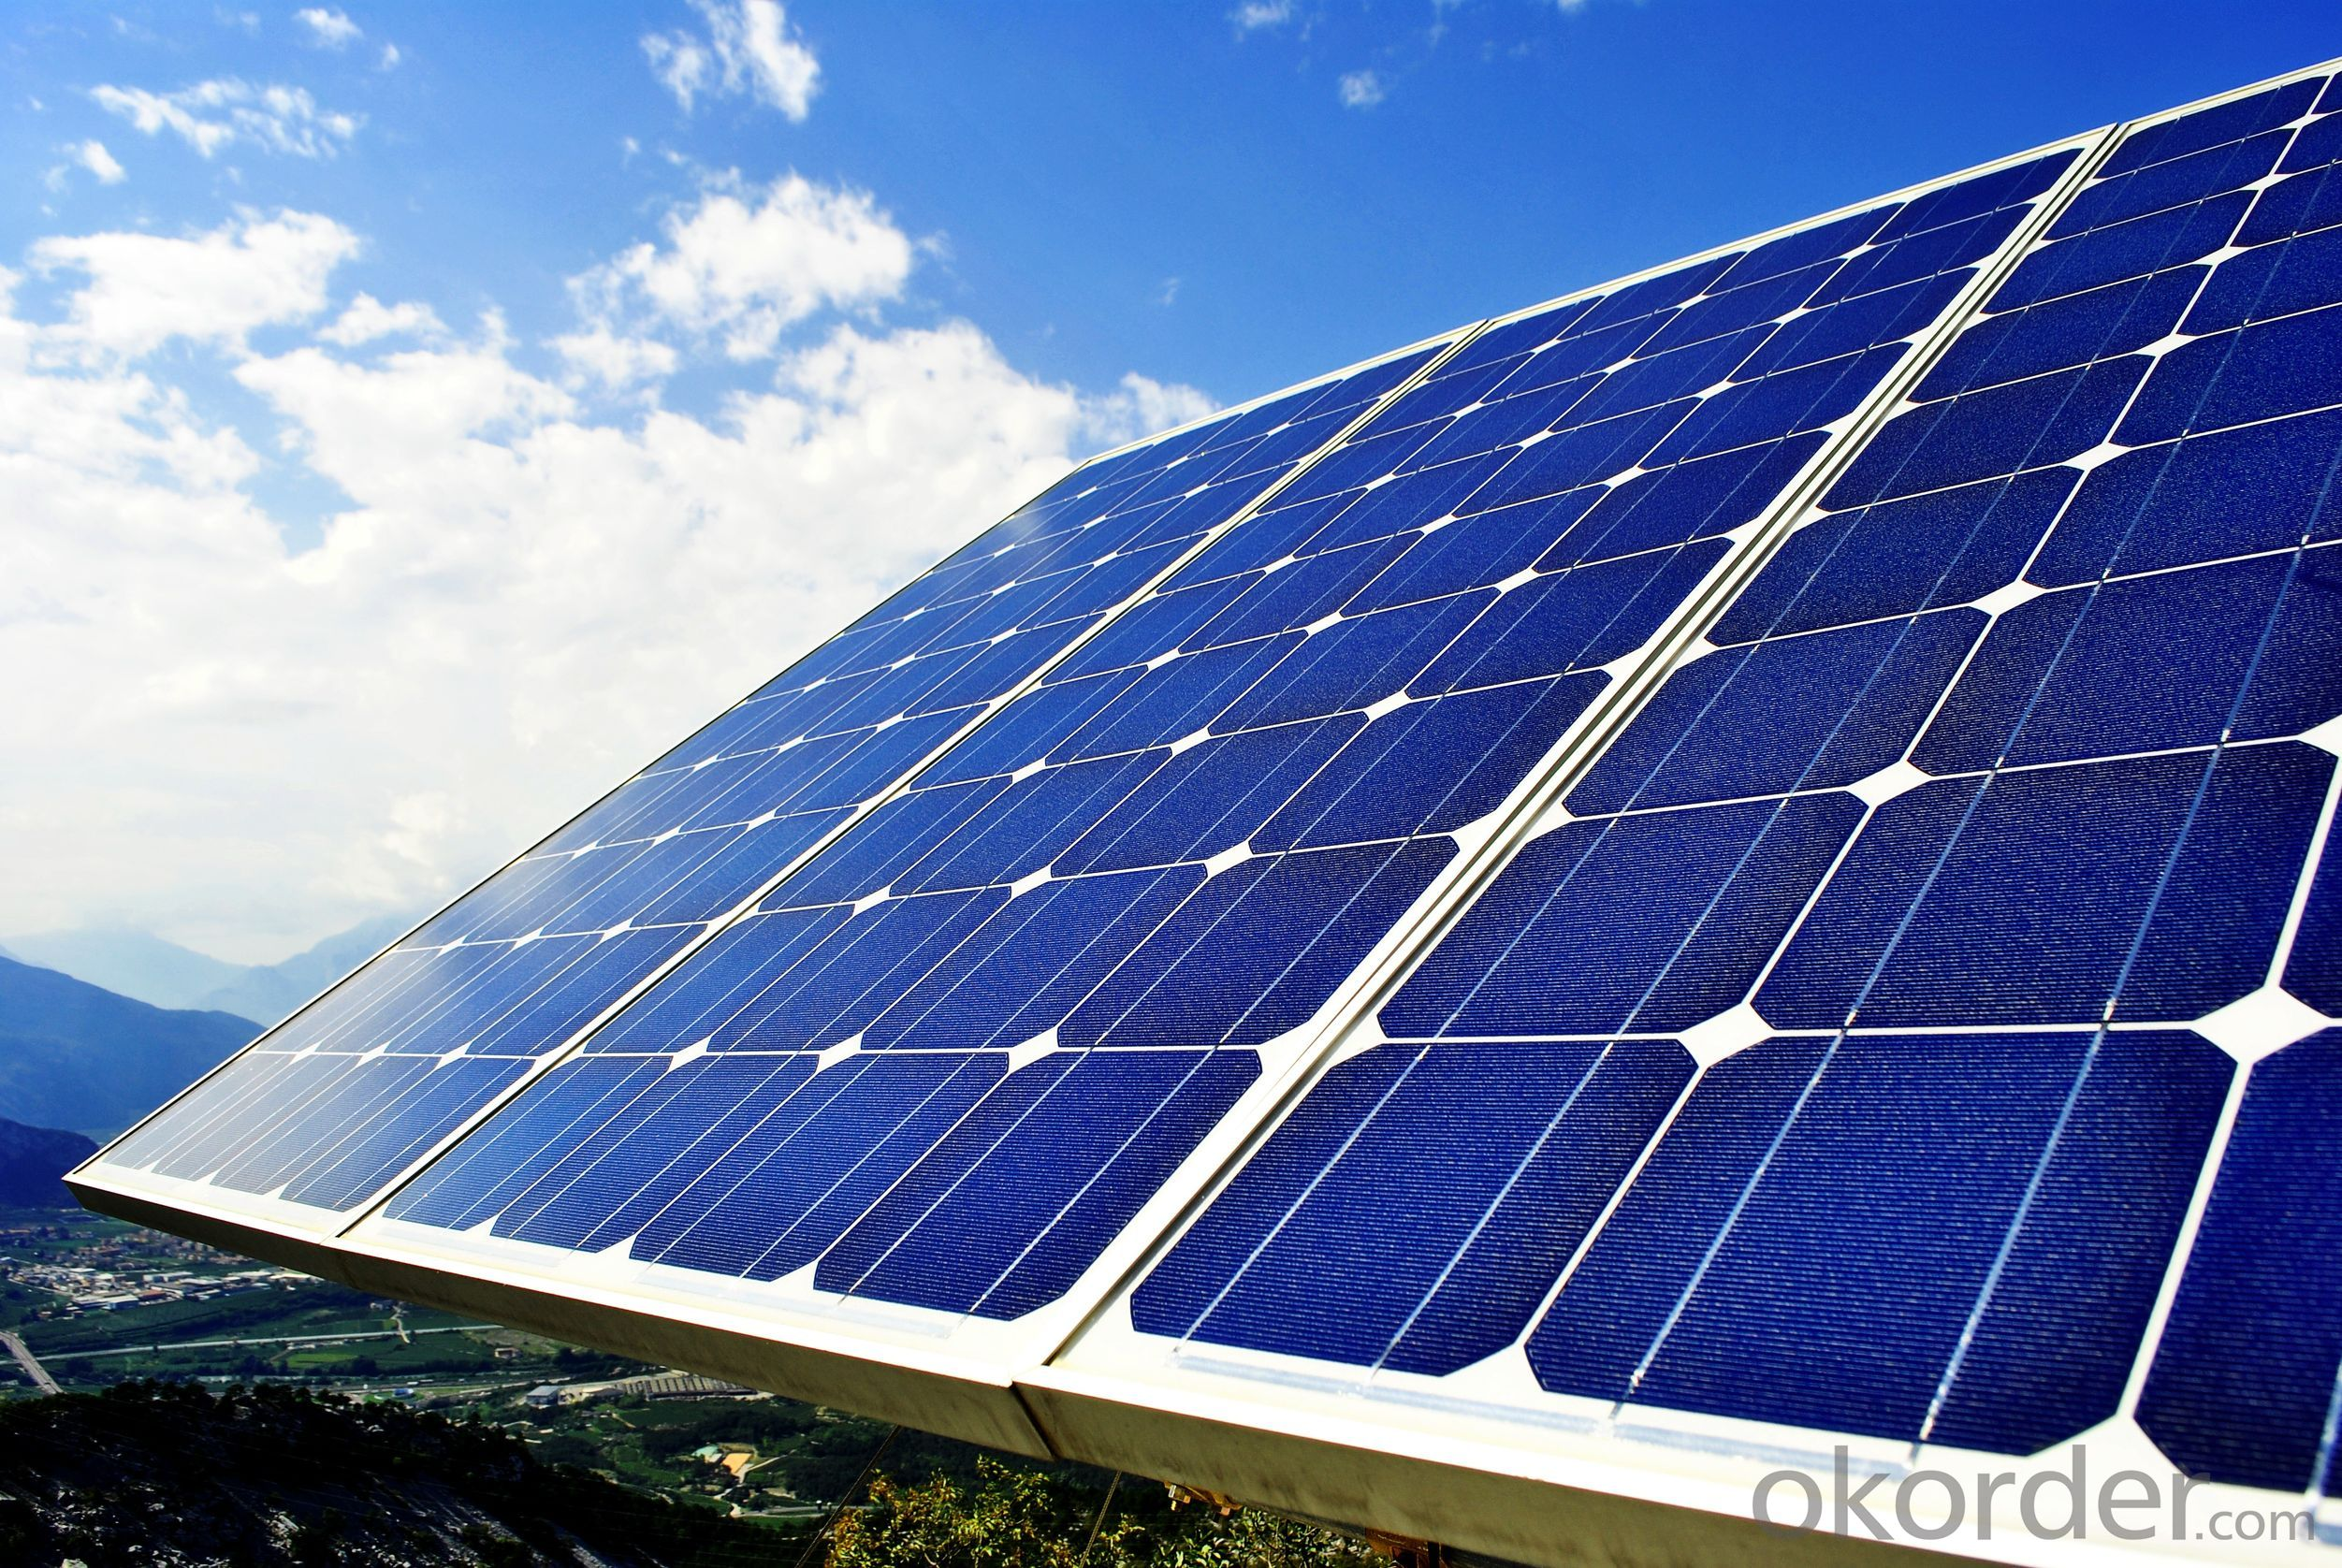 Buy Mono Solar Panel Importer Solar System Solar Energy Price Size Weight Model Width Okorder Com